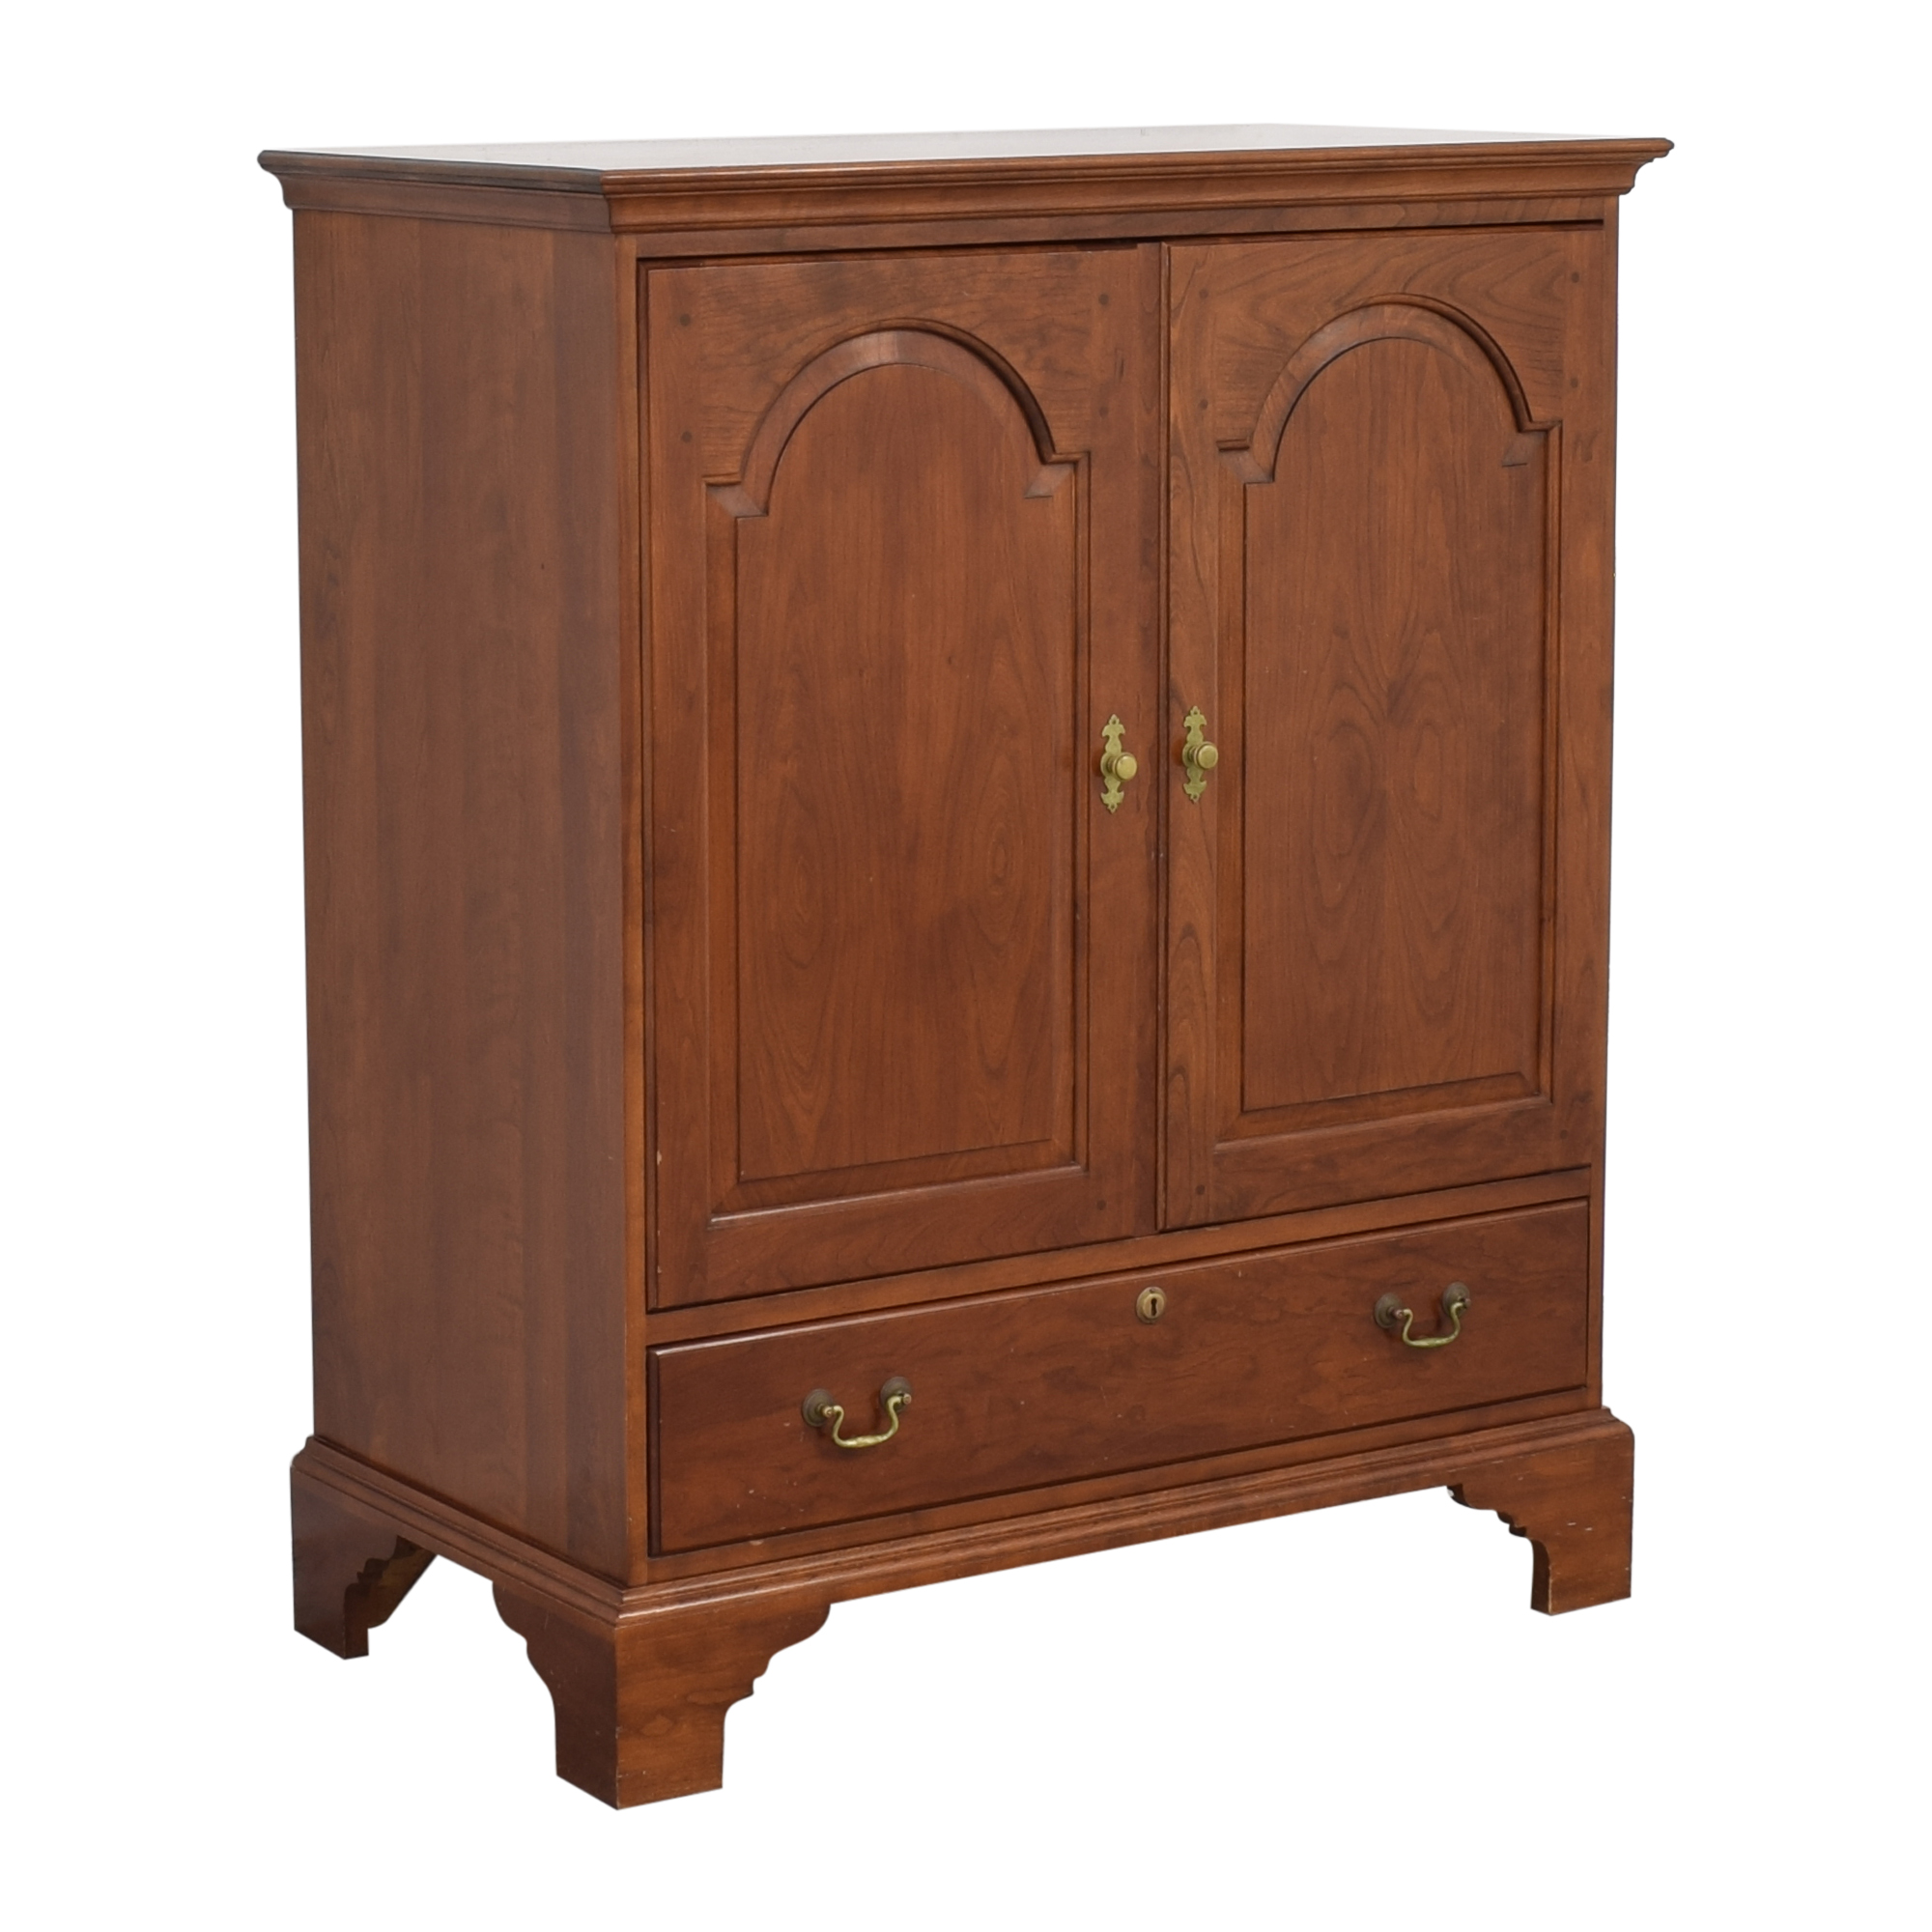 Stickley Furniture Stickley Furniture Media Cabinet Storage